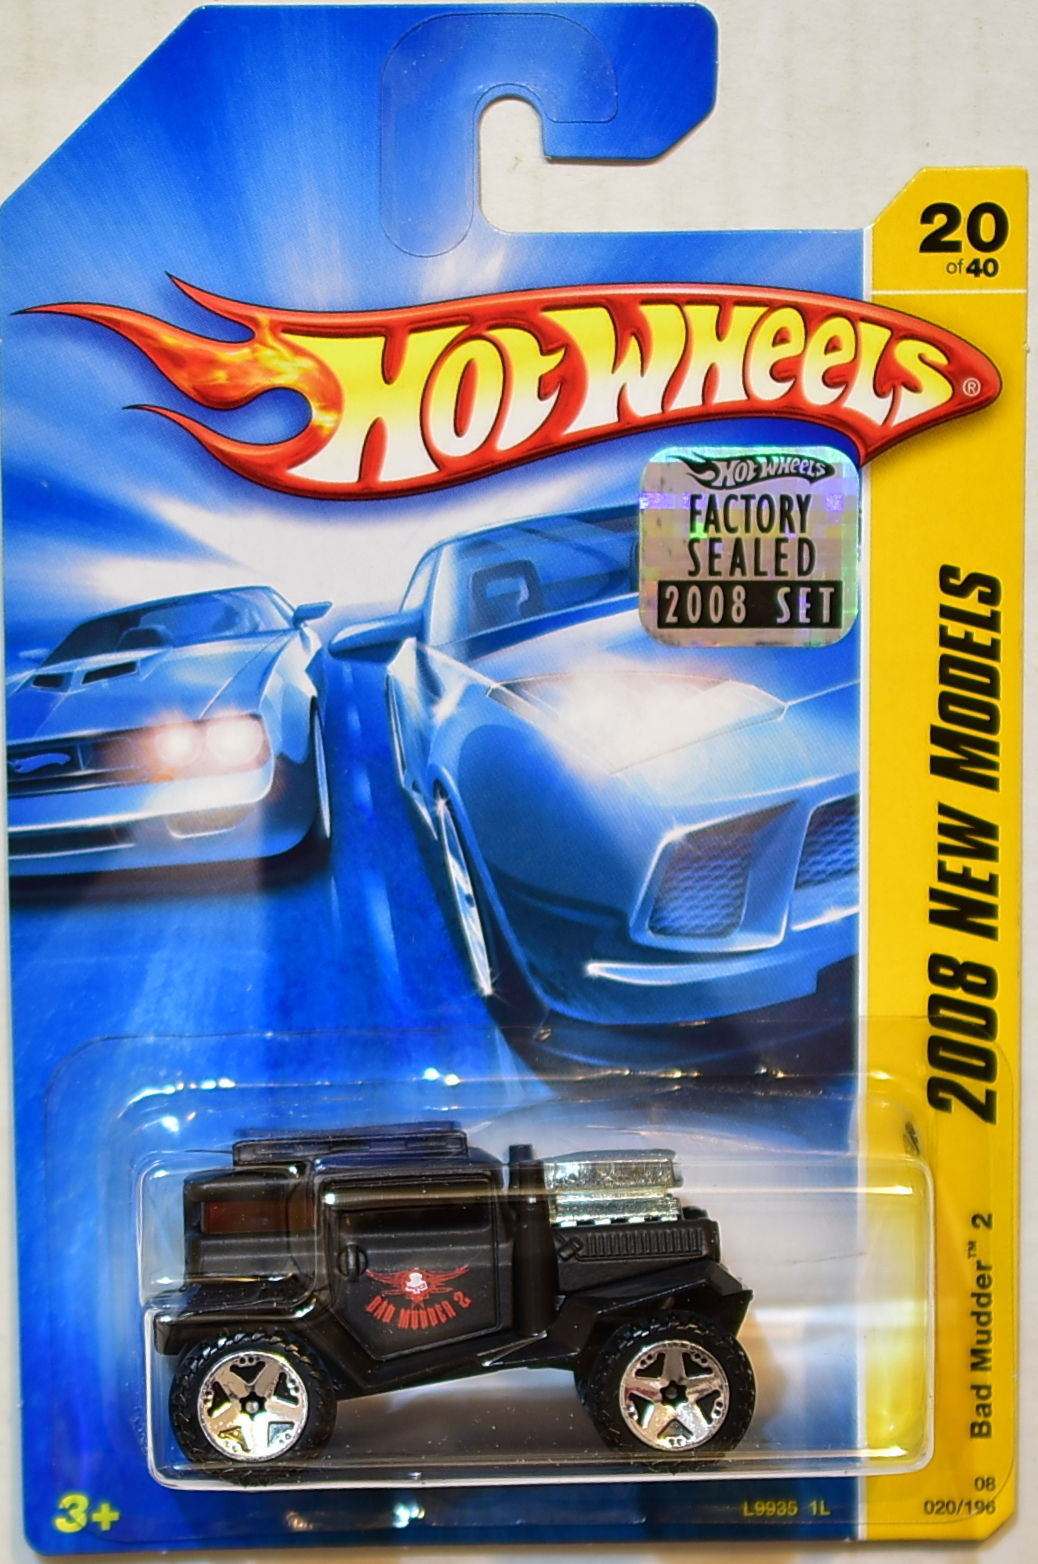 HOT WHEELS 2008 NEW MODELS BAD MUDDER 2 #20/40 BLACK FACTORY SEALED